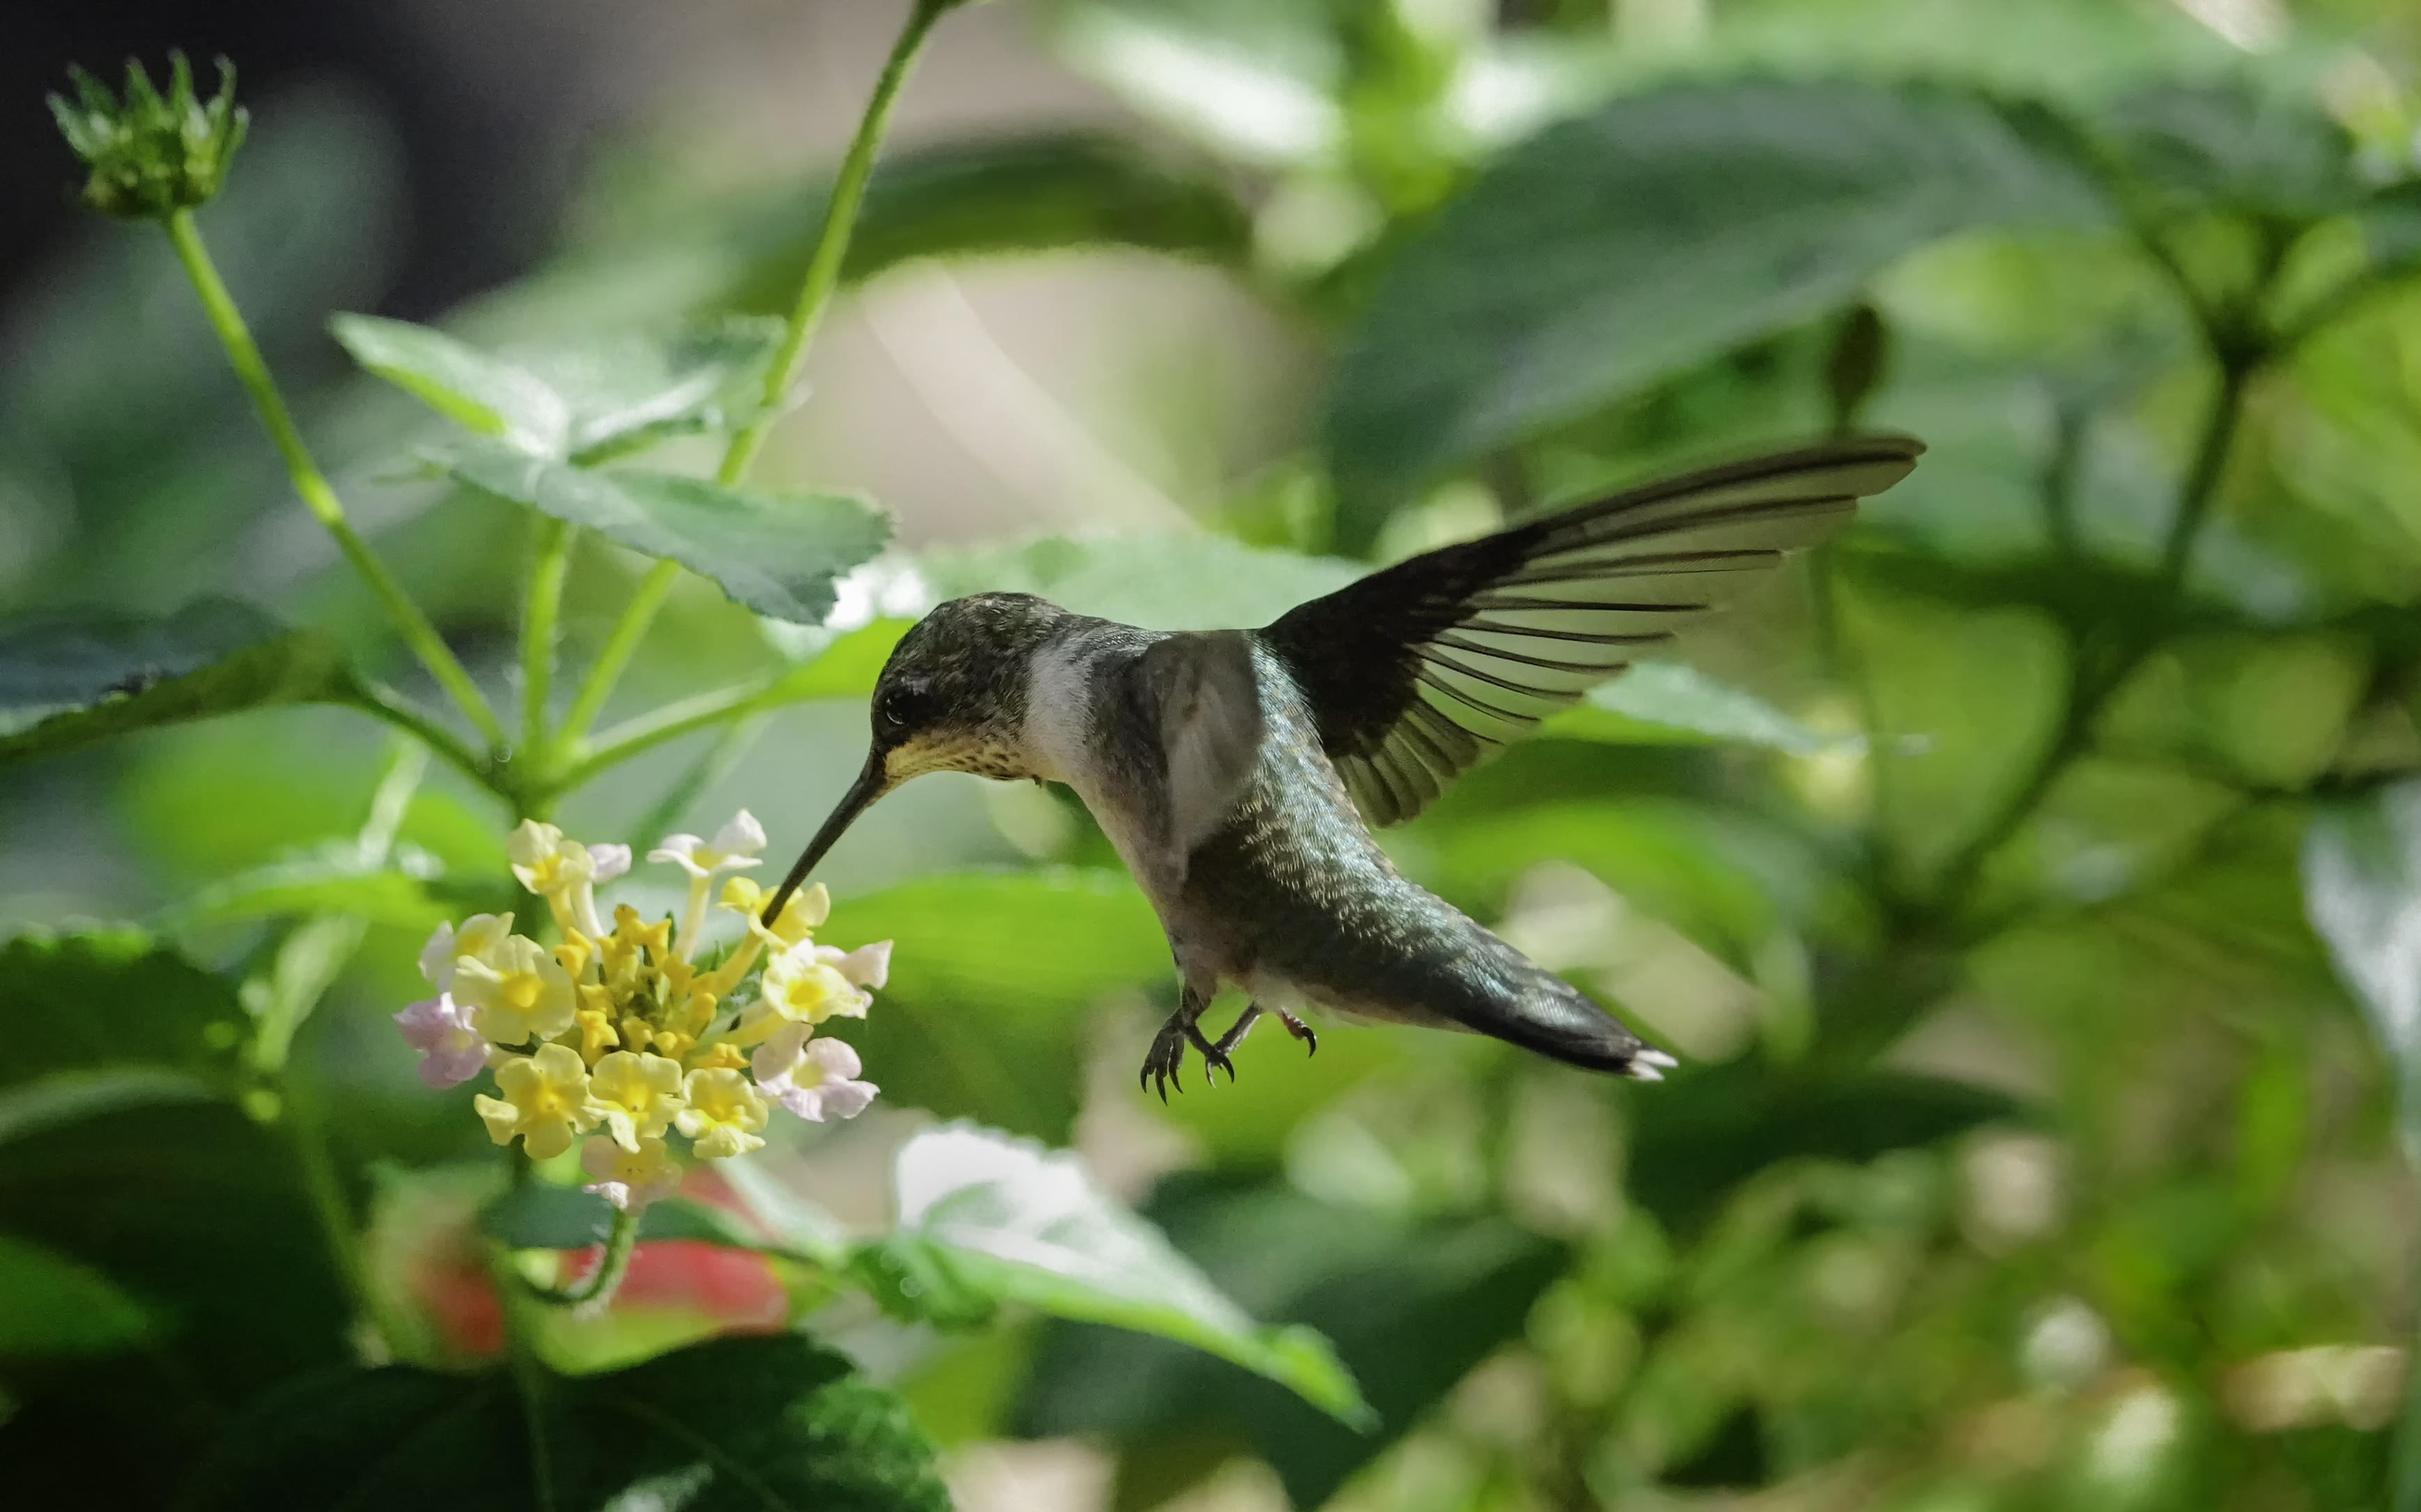 Divine Inspiration Photo #22B - Ruby-Throated Hummingbird #2 - 5 x 7